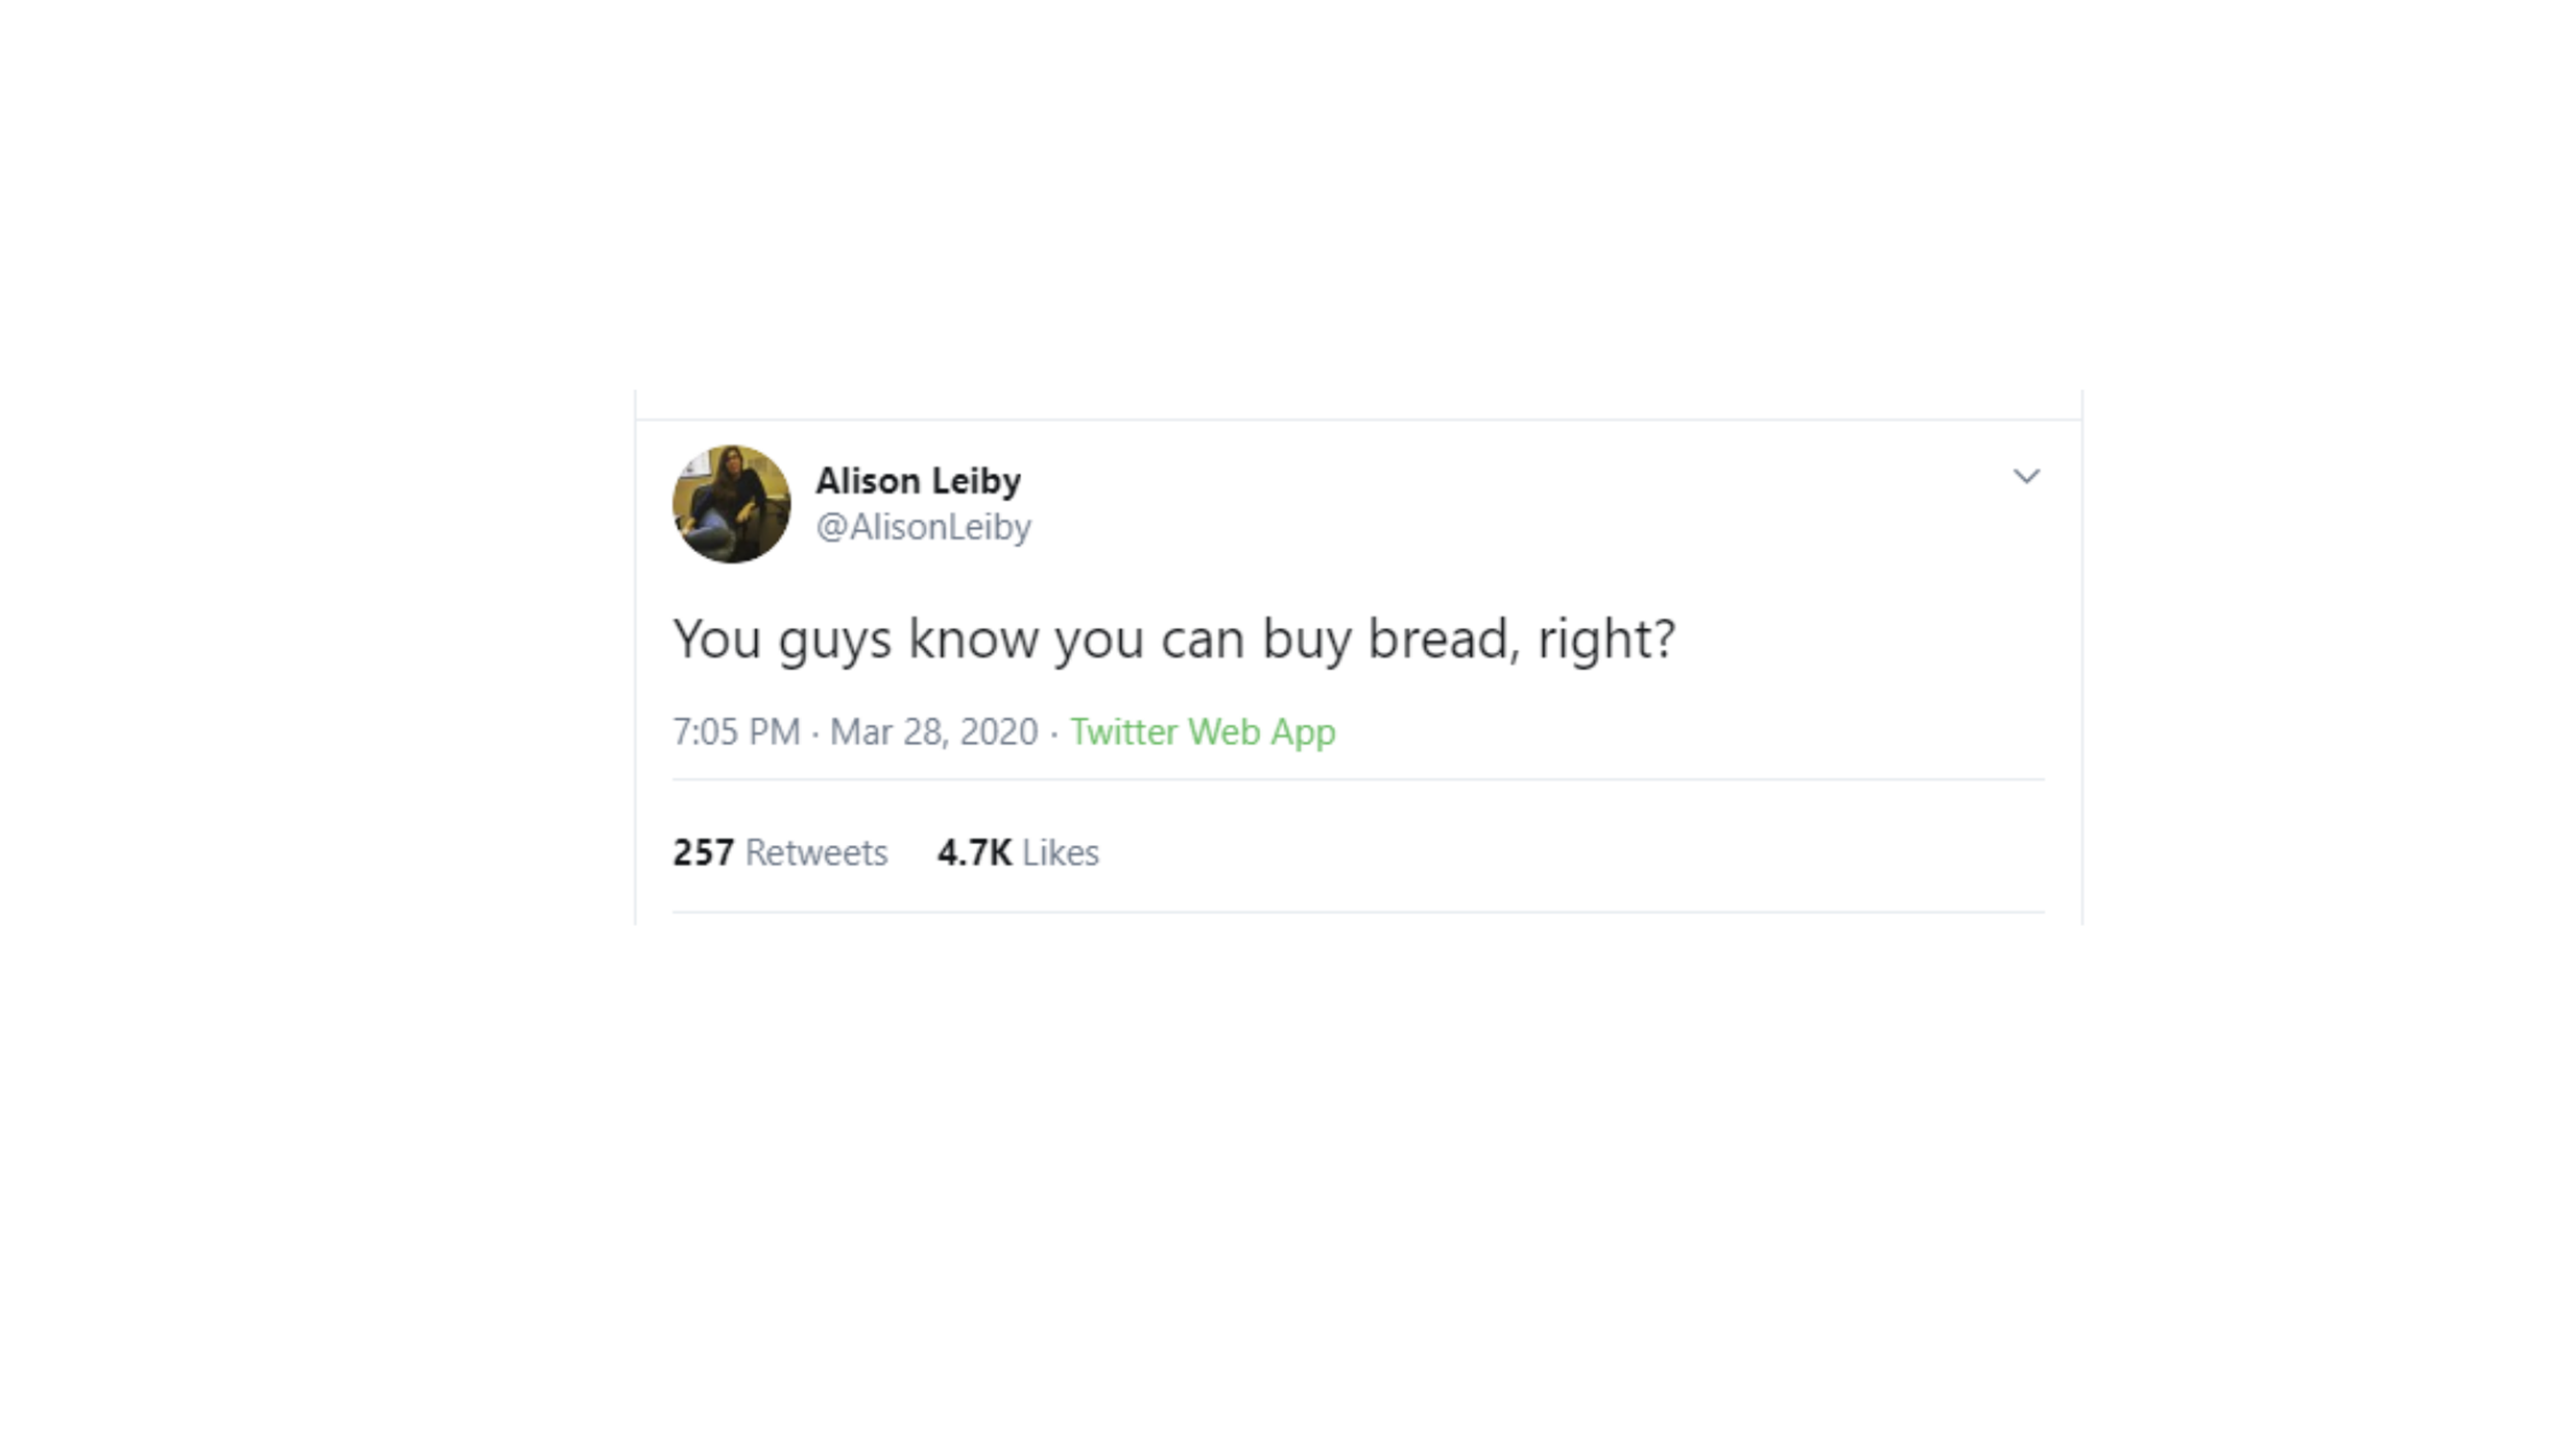 What have we learned blog image - Buying bread tweet